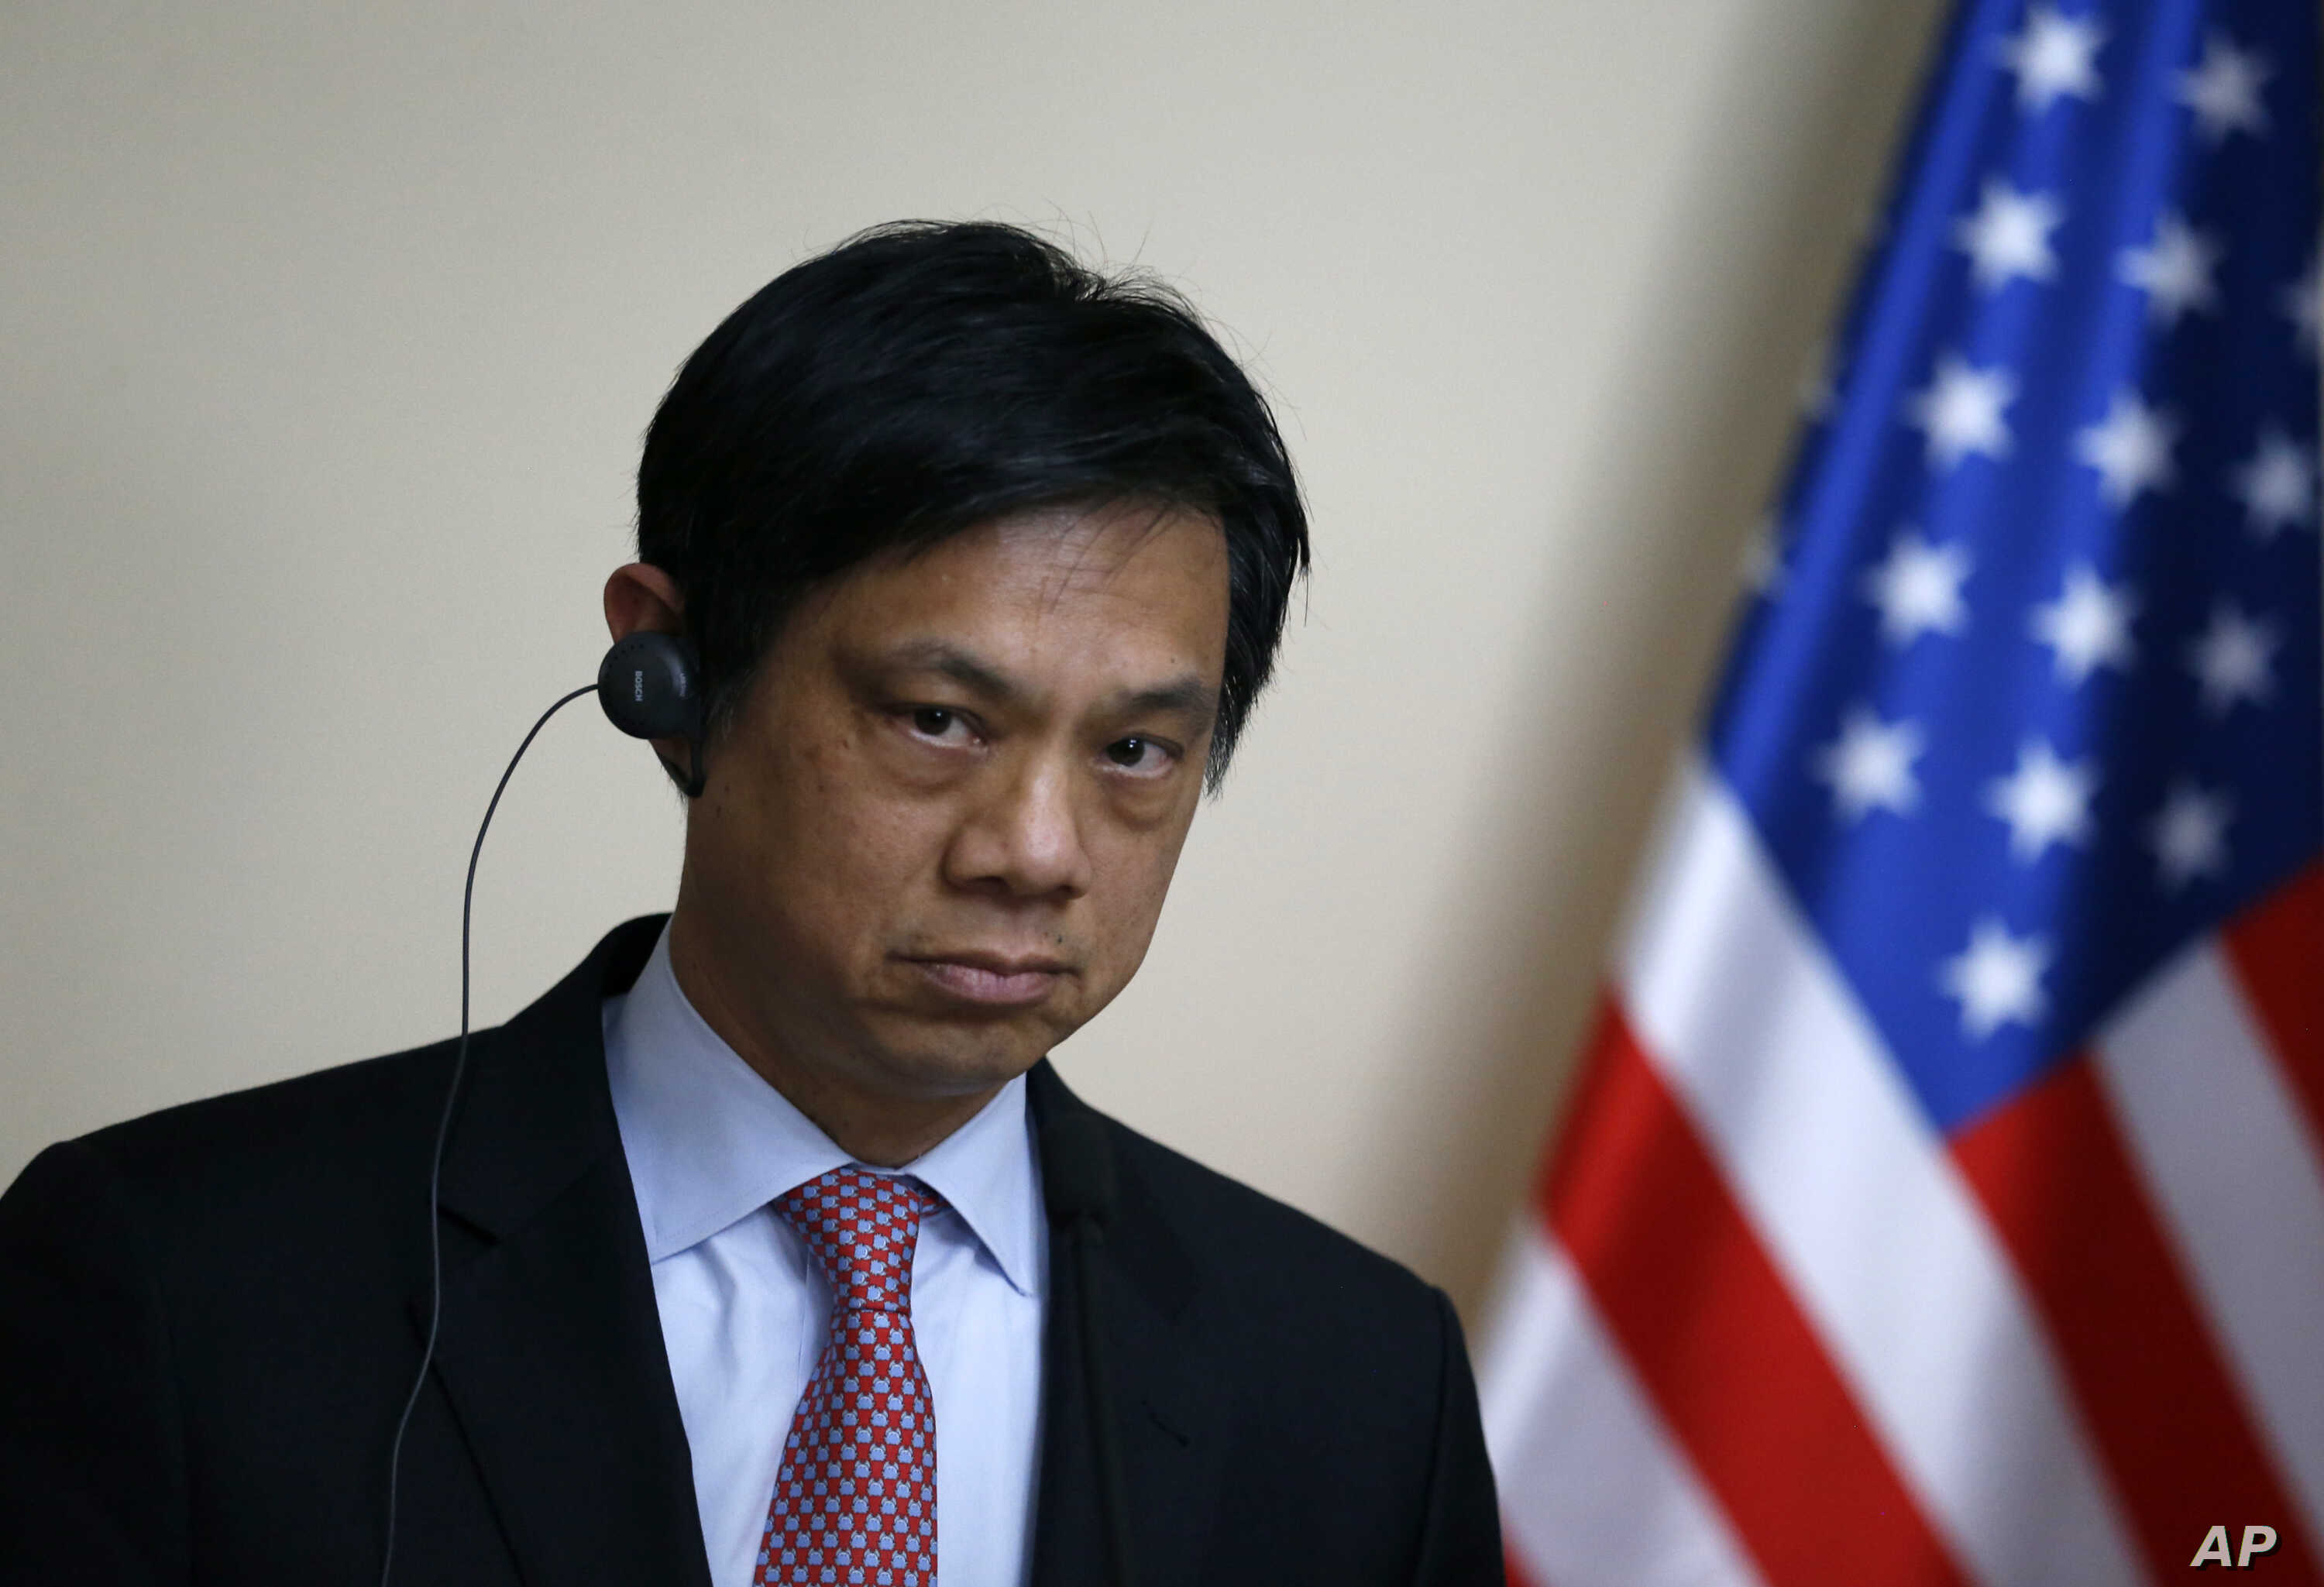 Hoyt Brian Yee, Deputy Assistant Secretary for European and Eurasian Affairs, listens as Serbian Prime Minister Aleksandar Vucic speaks during a shared news conference, in Belgrade, May 24, 2017.